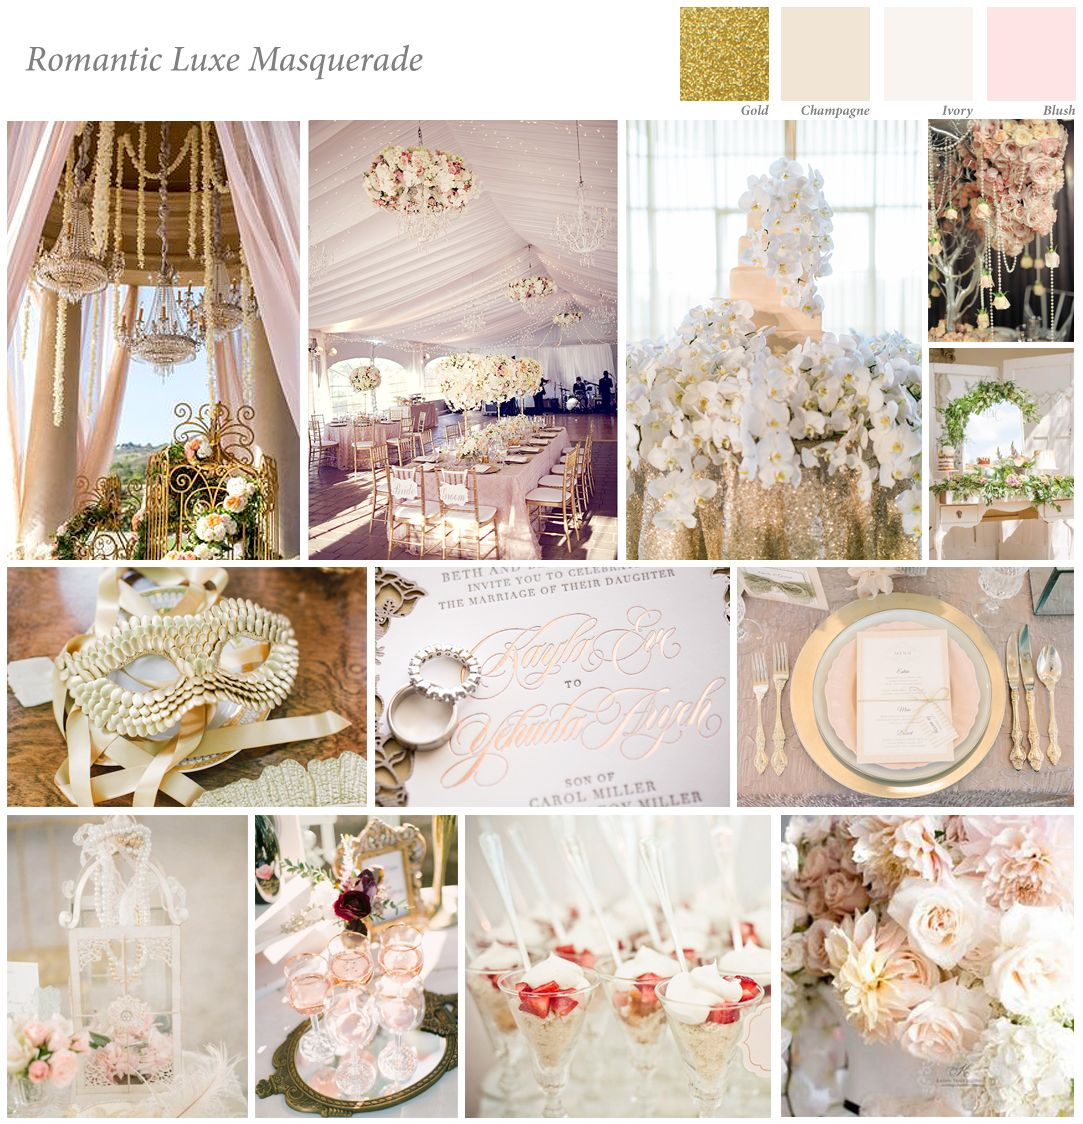 Wedding And Event Planning Courses Aawep Wedding And Event Planning Courses Wedding Planner Course Event Planning Courses Wedding Event Planning